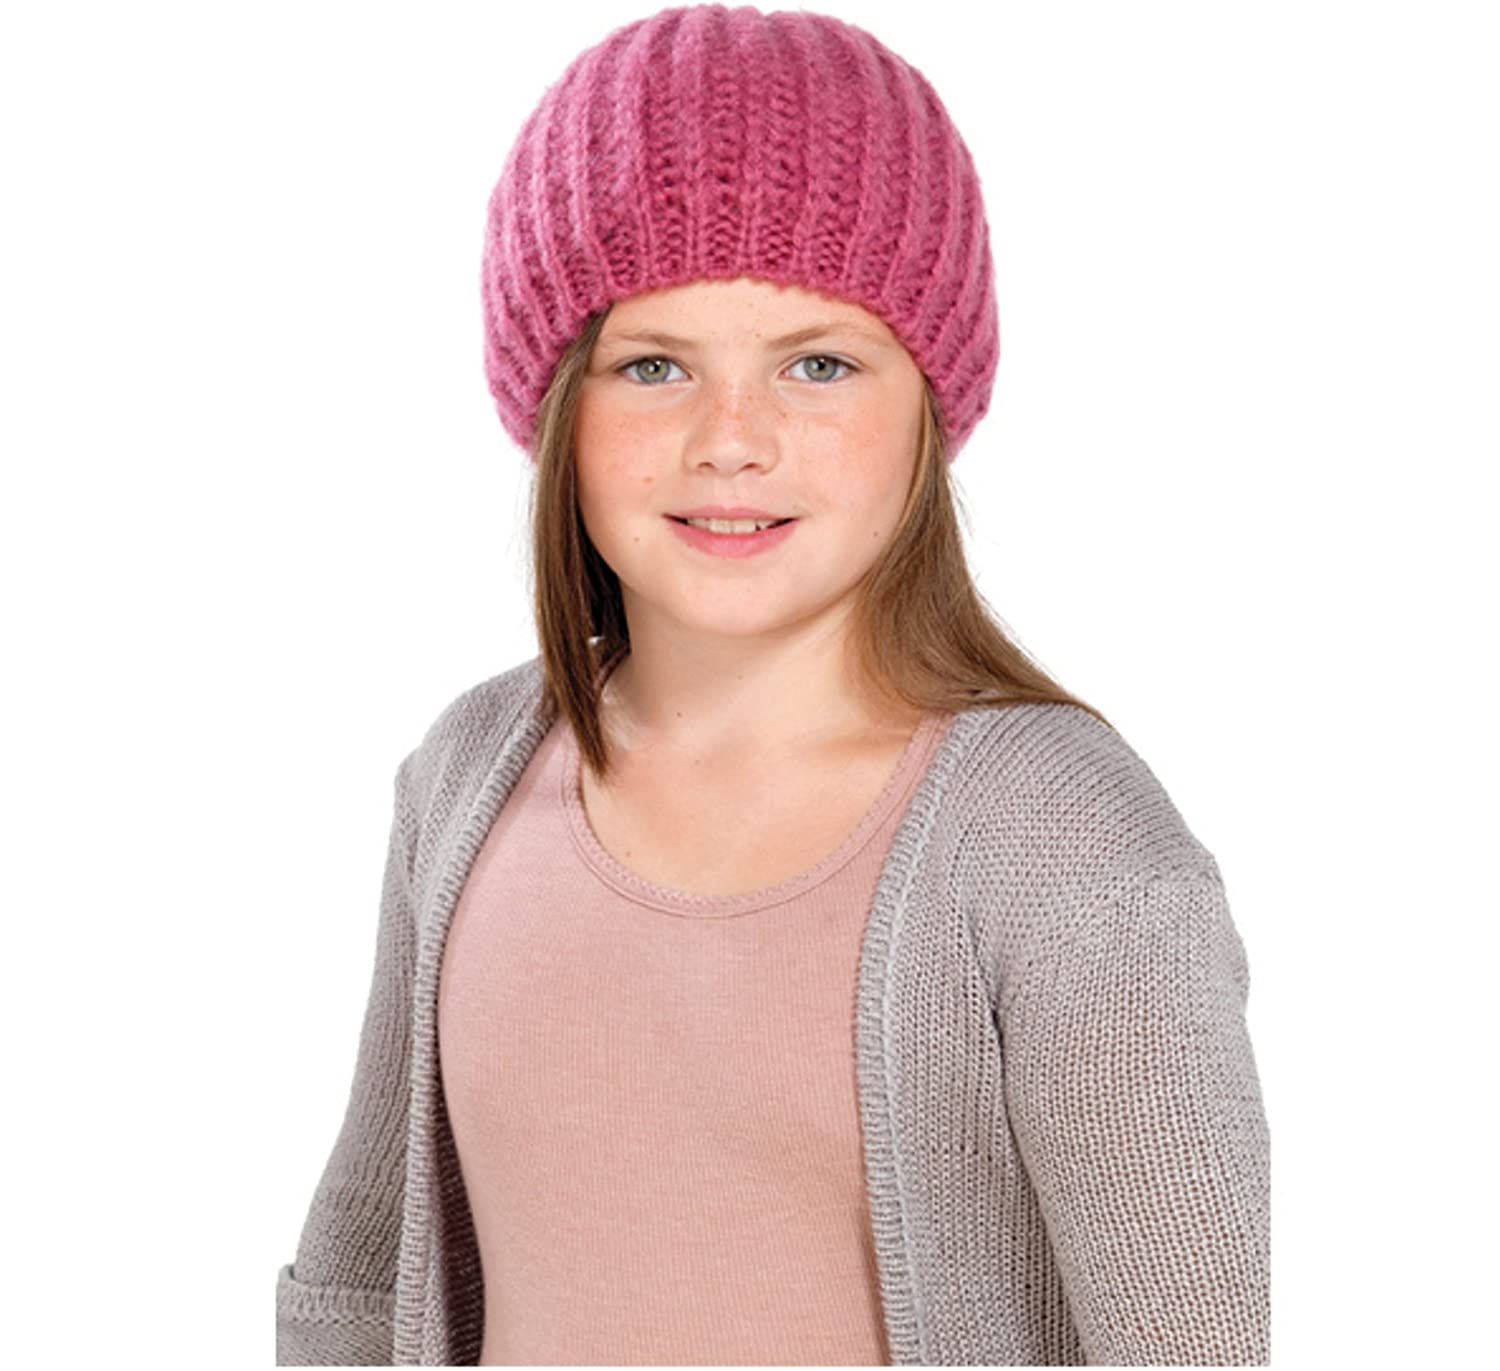 OCTAVE® Girls Knitted Beanie Beret Hat With Lurex For Added Sparkle! - In Purple